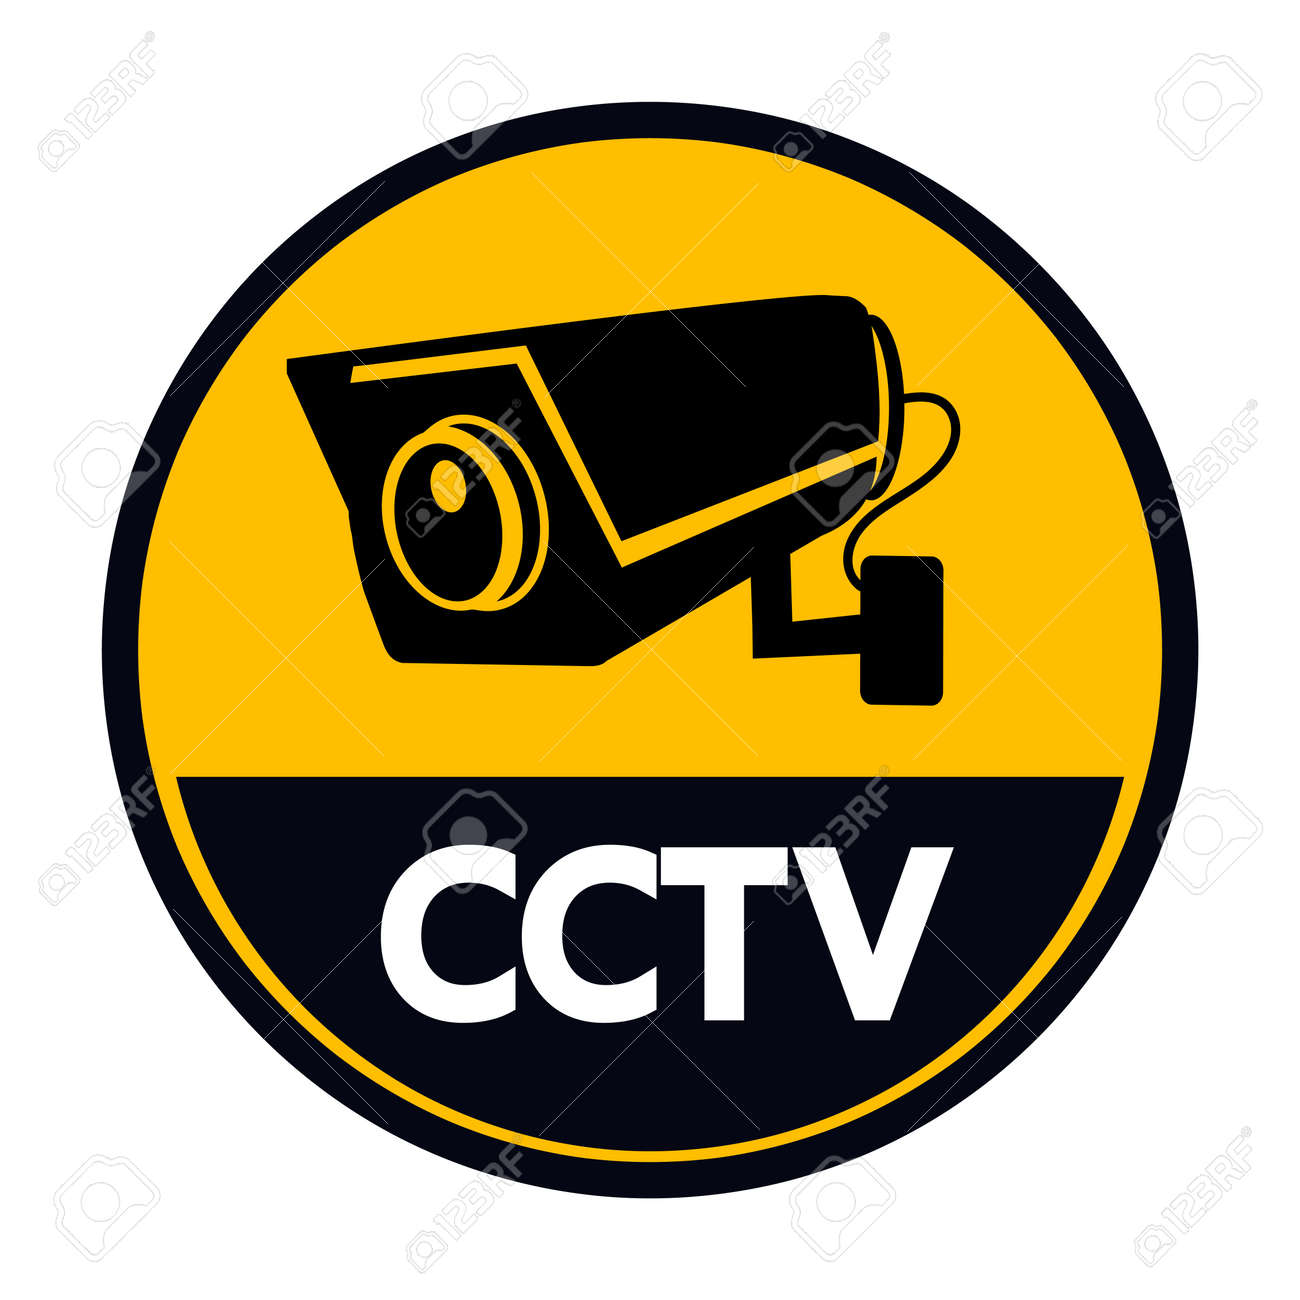 CCTV Security camera vector isolated sign - 168920469